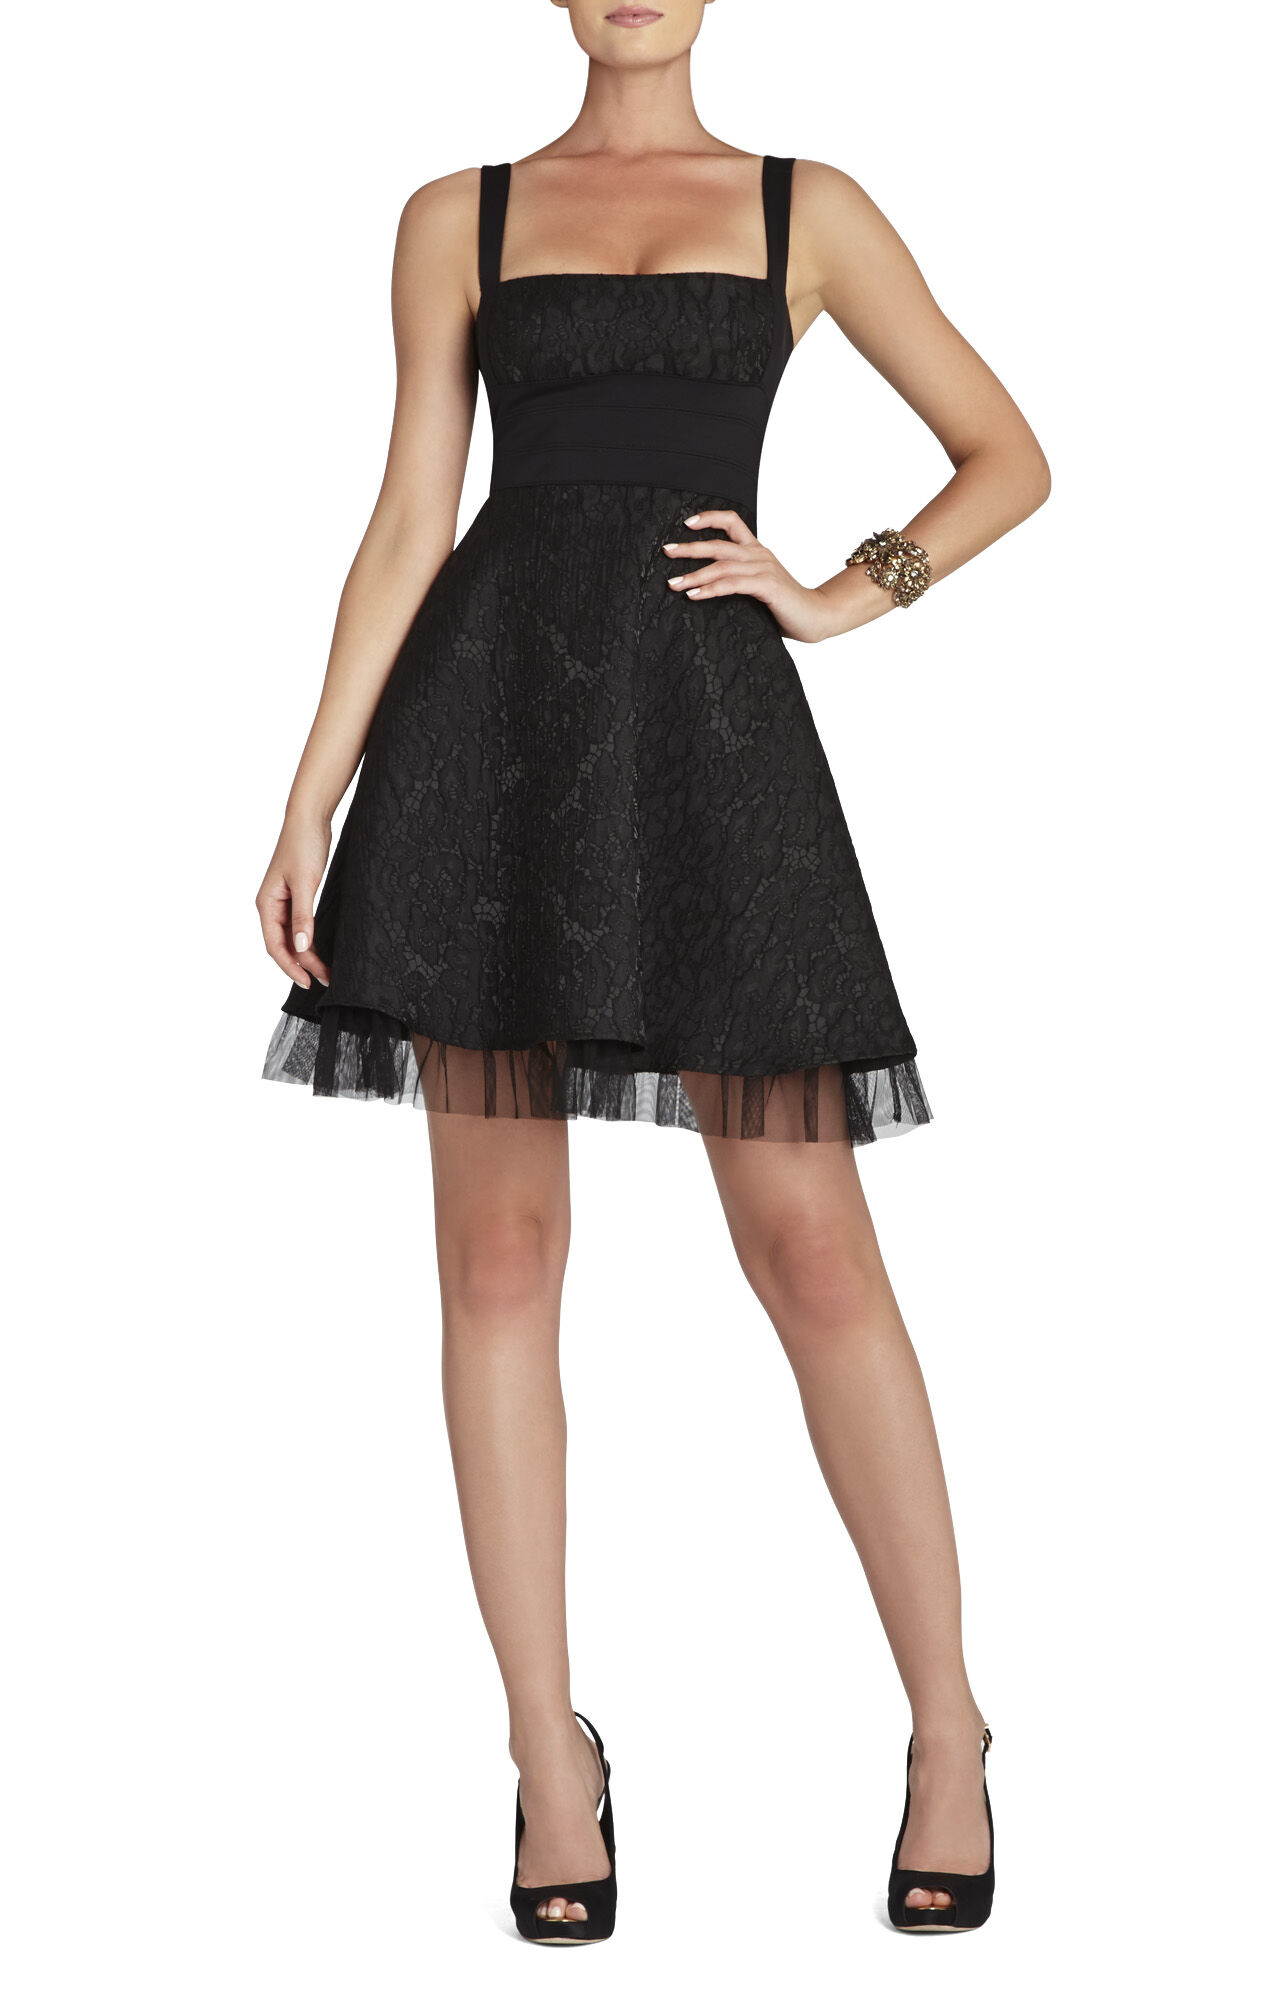 Kaya Fitted-Bodice Cocktail Dress